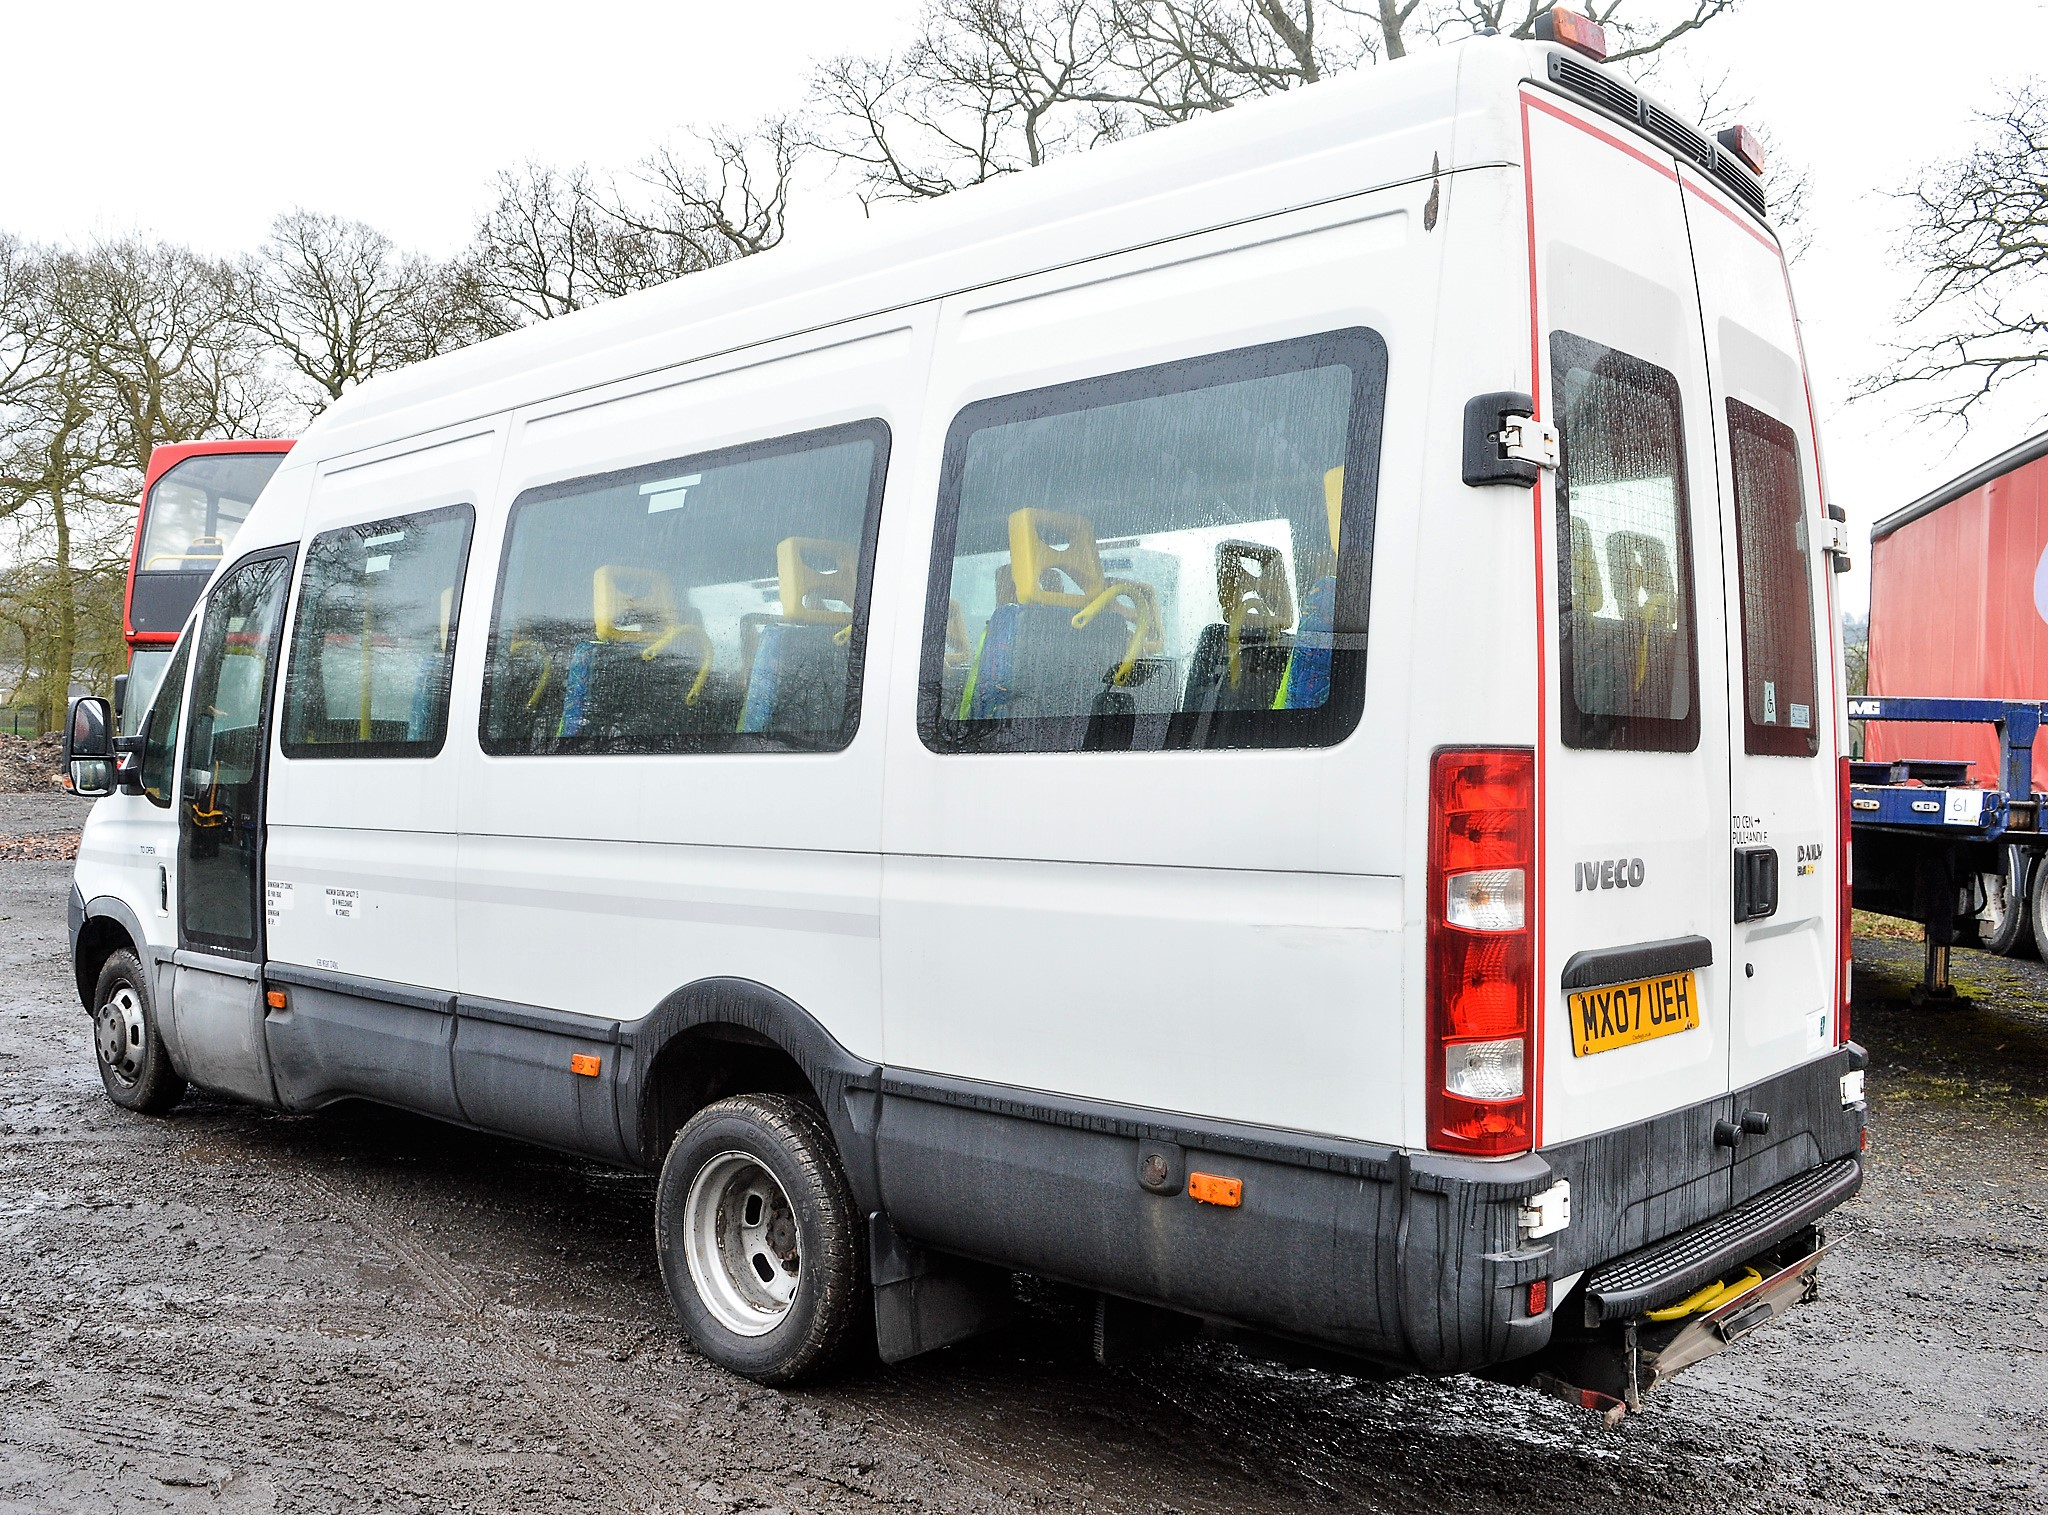 Lot 38 - Iveco Daily 3.0 HPi 50C15 13 seat minibus Registration Number: MX07 UEH Date of Registration: 04/